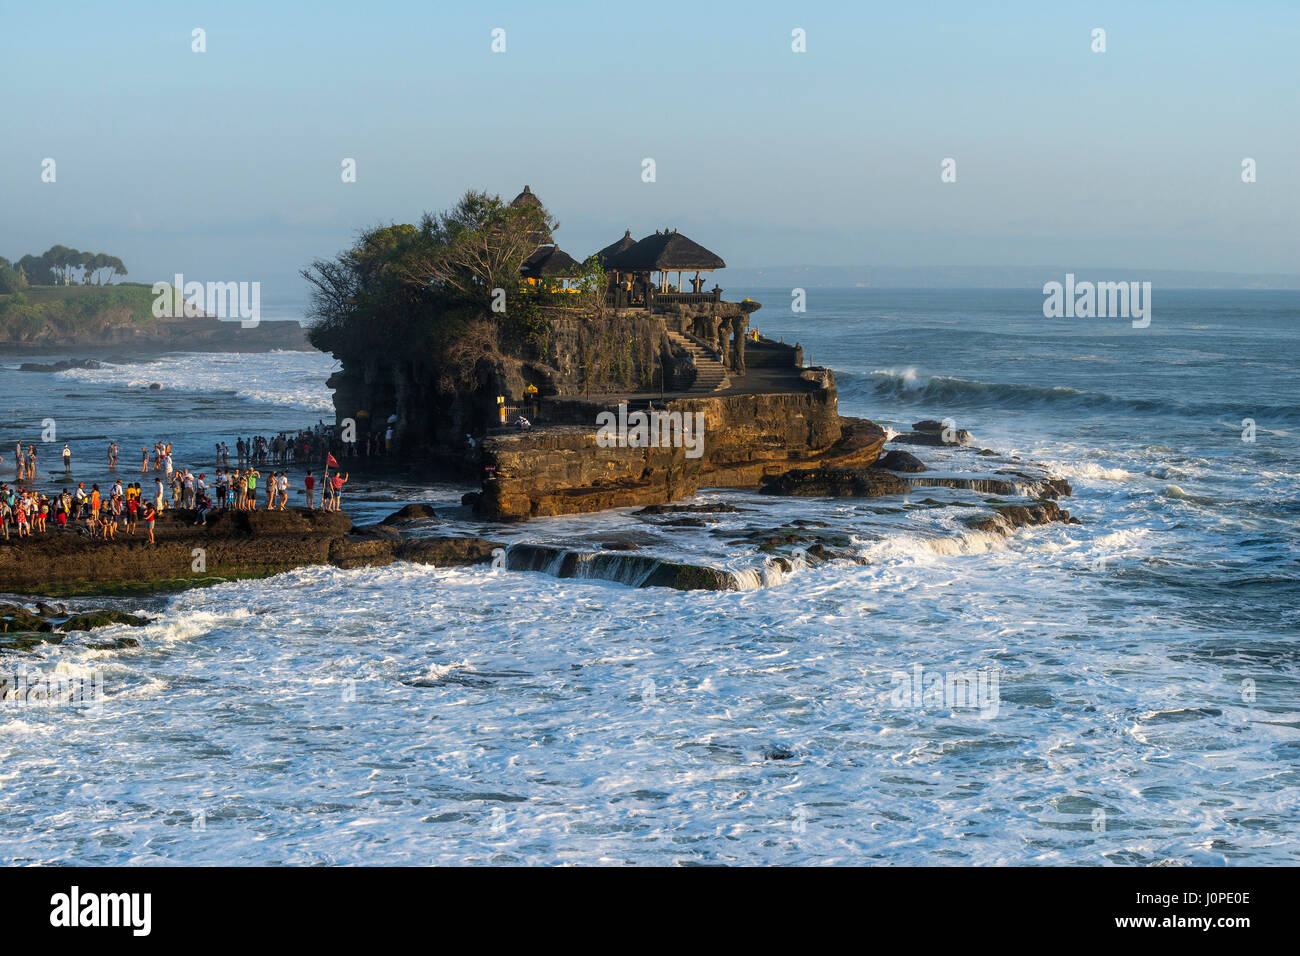 Pilgimage Temple Pura Tanah Lot, Bali, Indonesia - Stock Image